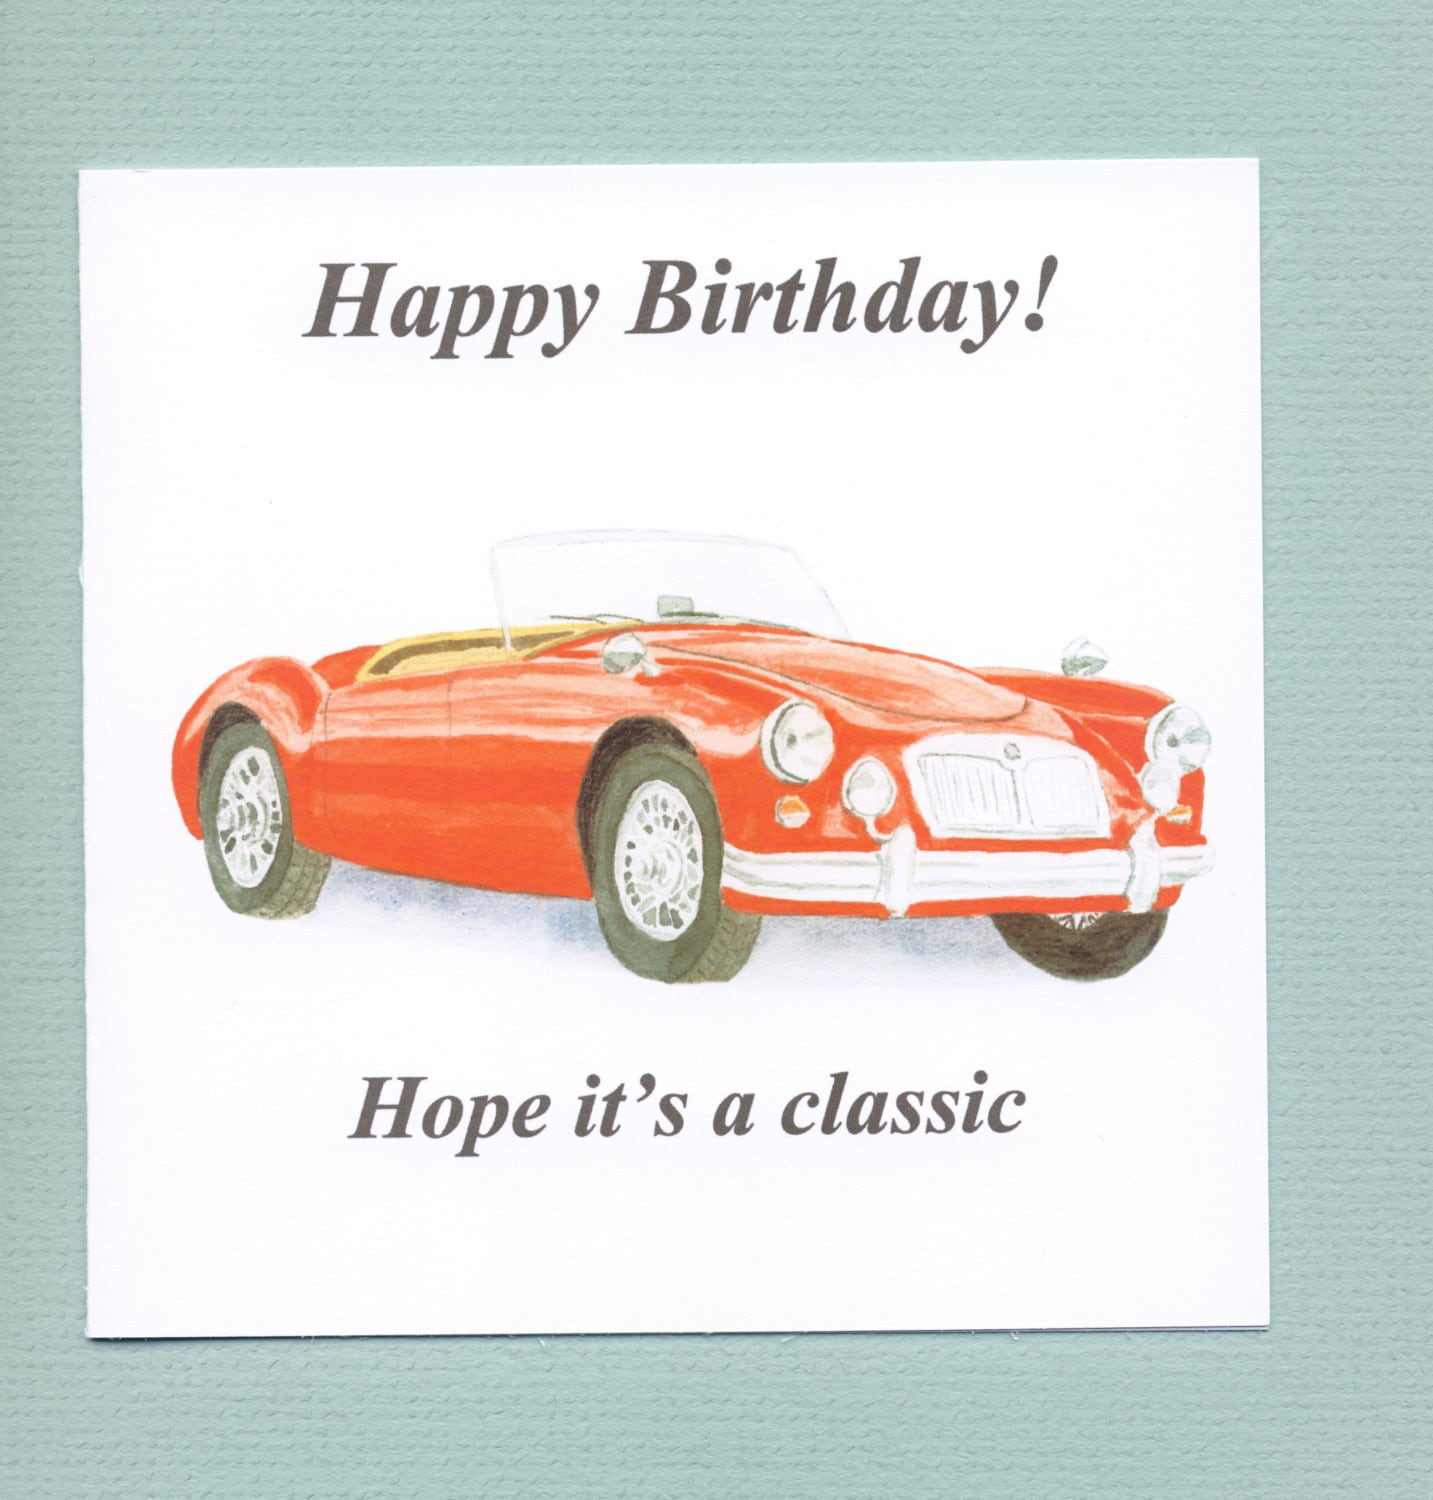 MGA MG A Red Classic Car Birthday Card For Men